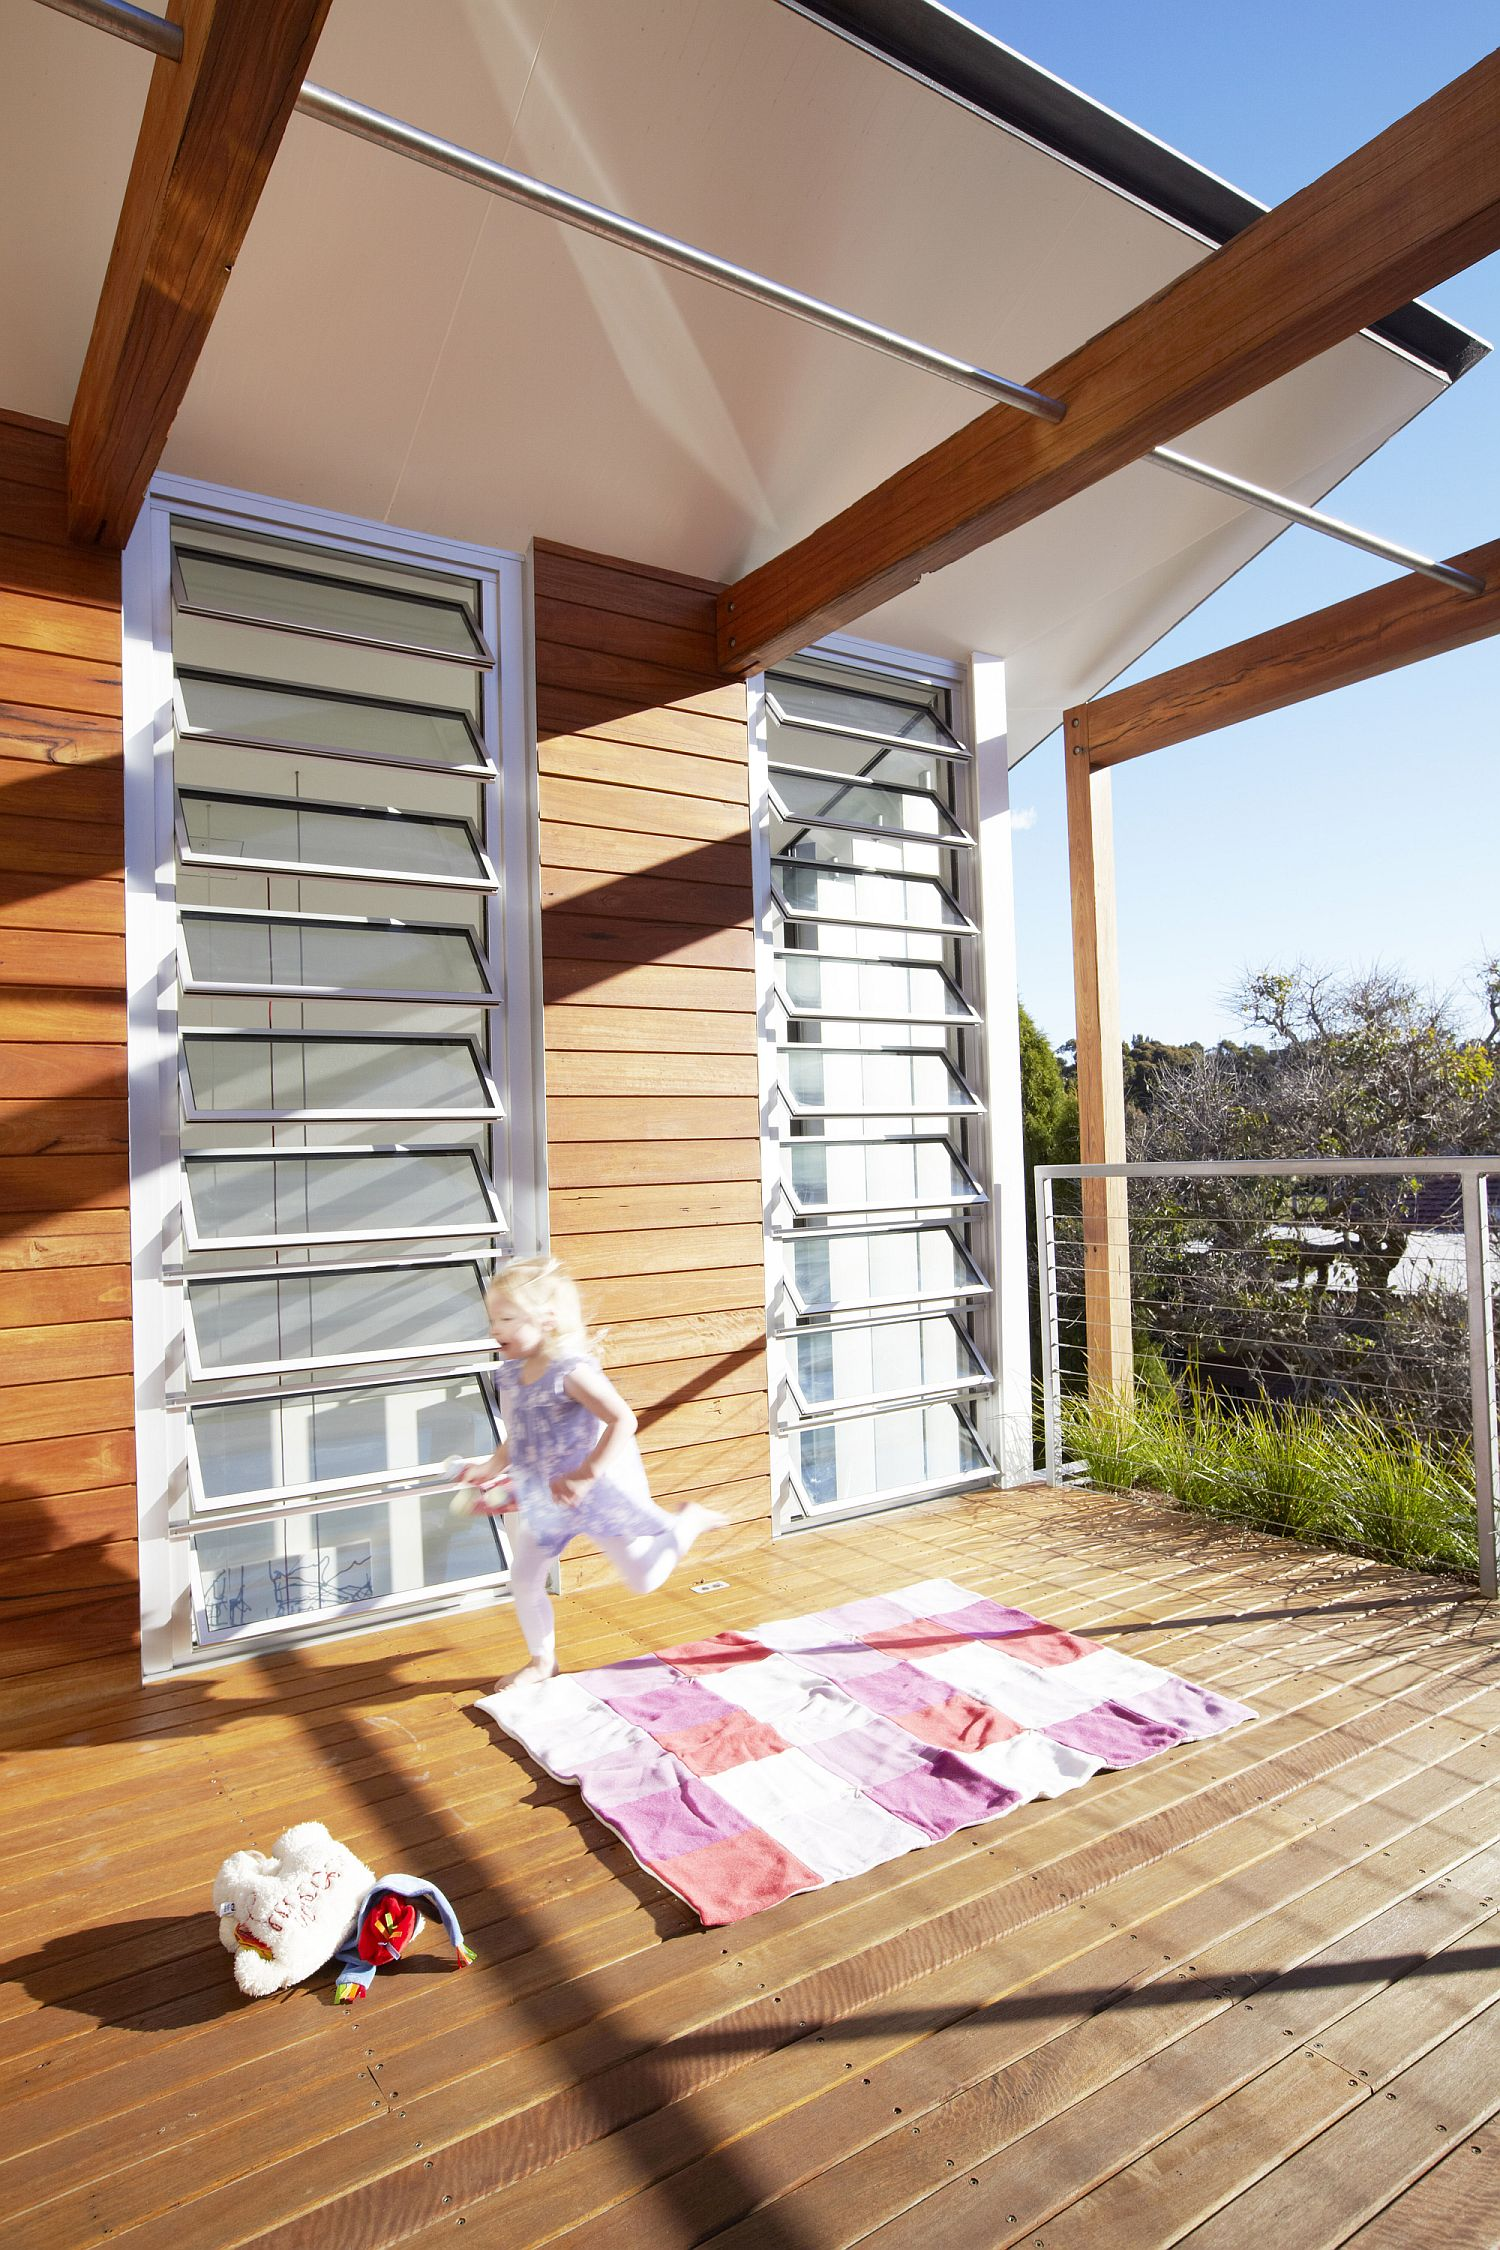 Moving roof offers shade to those on the deck when needed